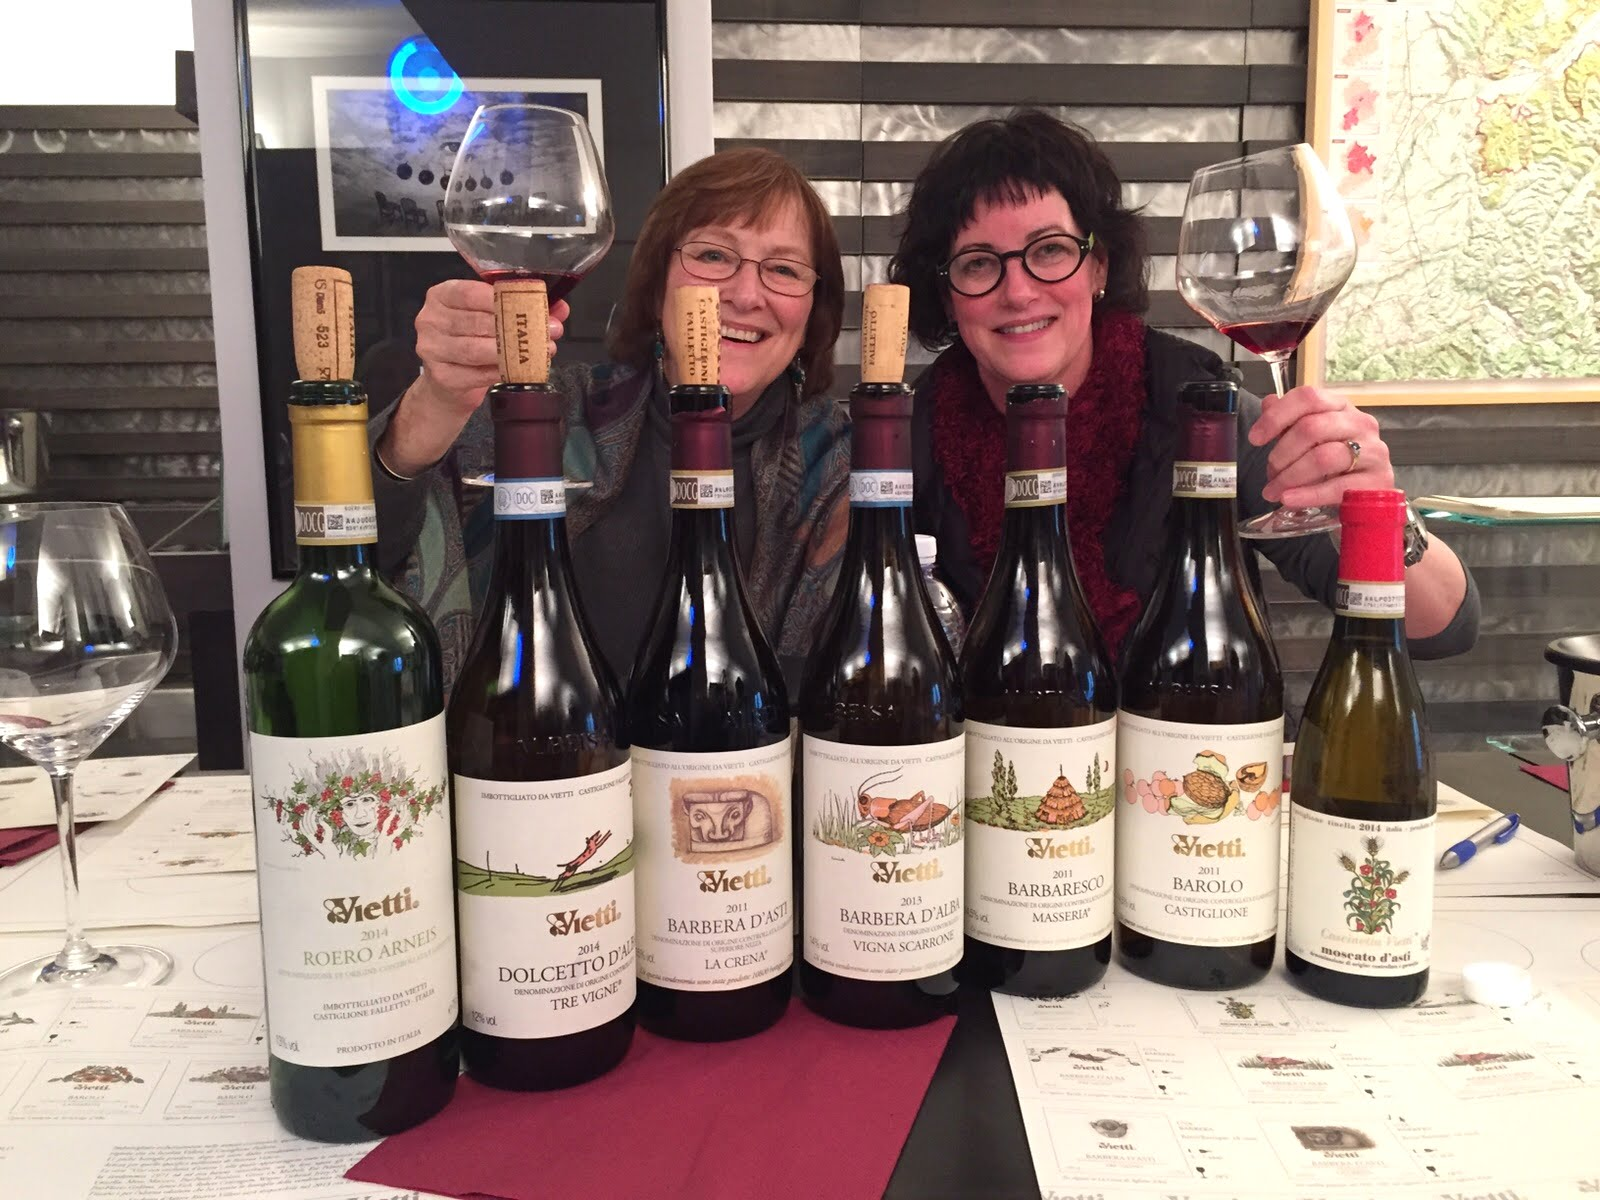 Dalia e Toni da Vietti.JPG